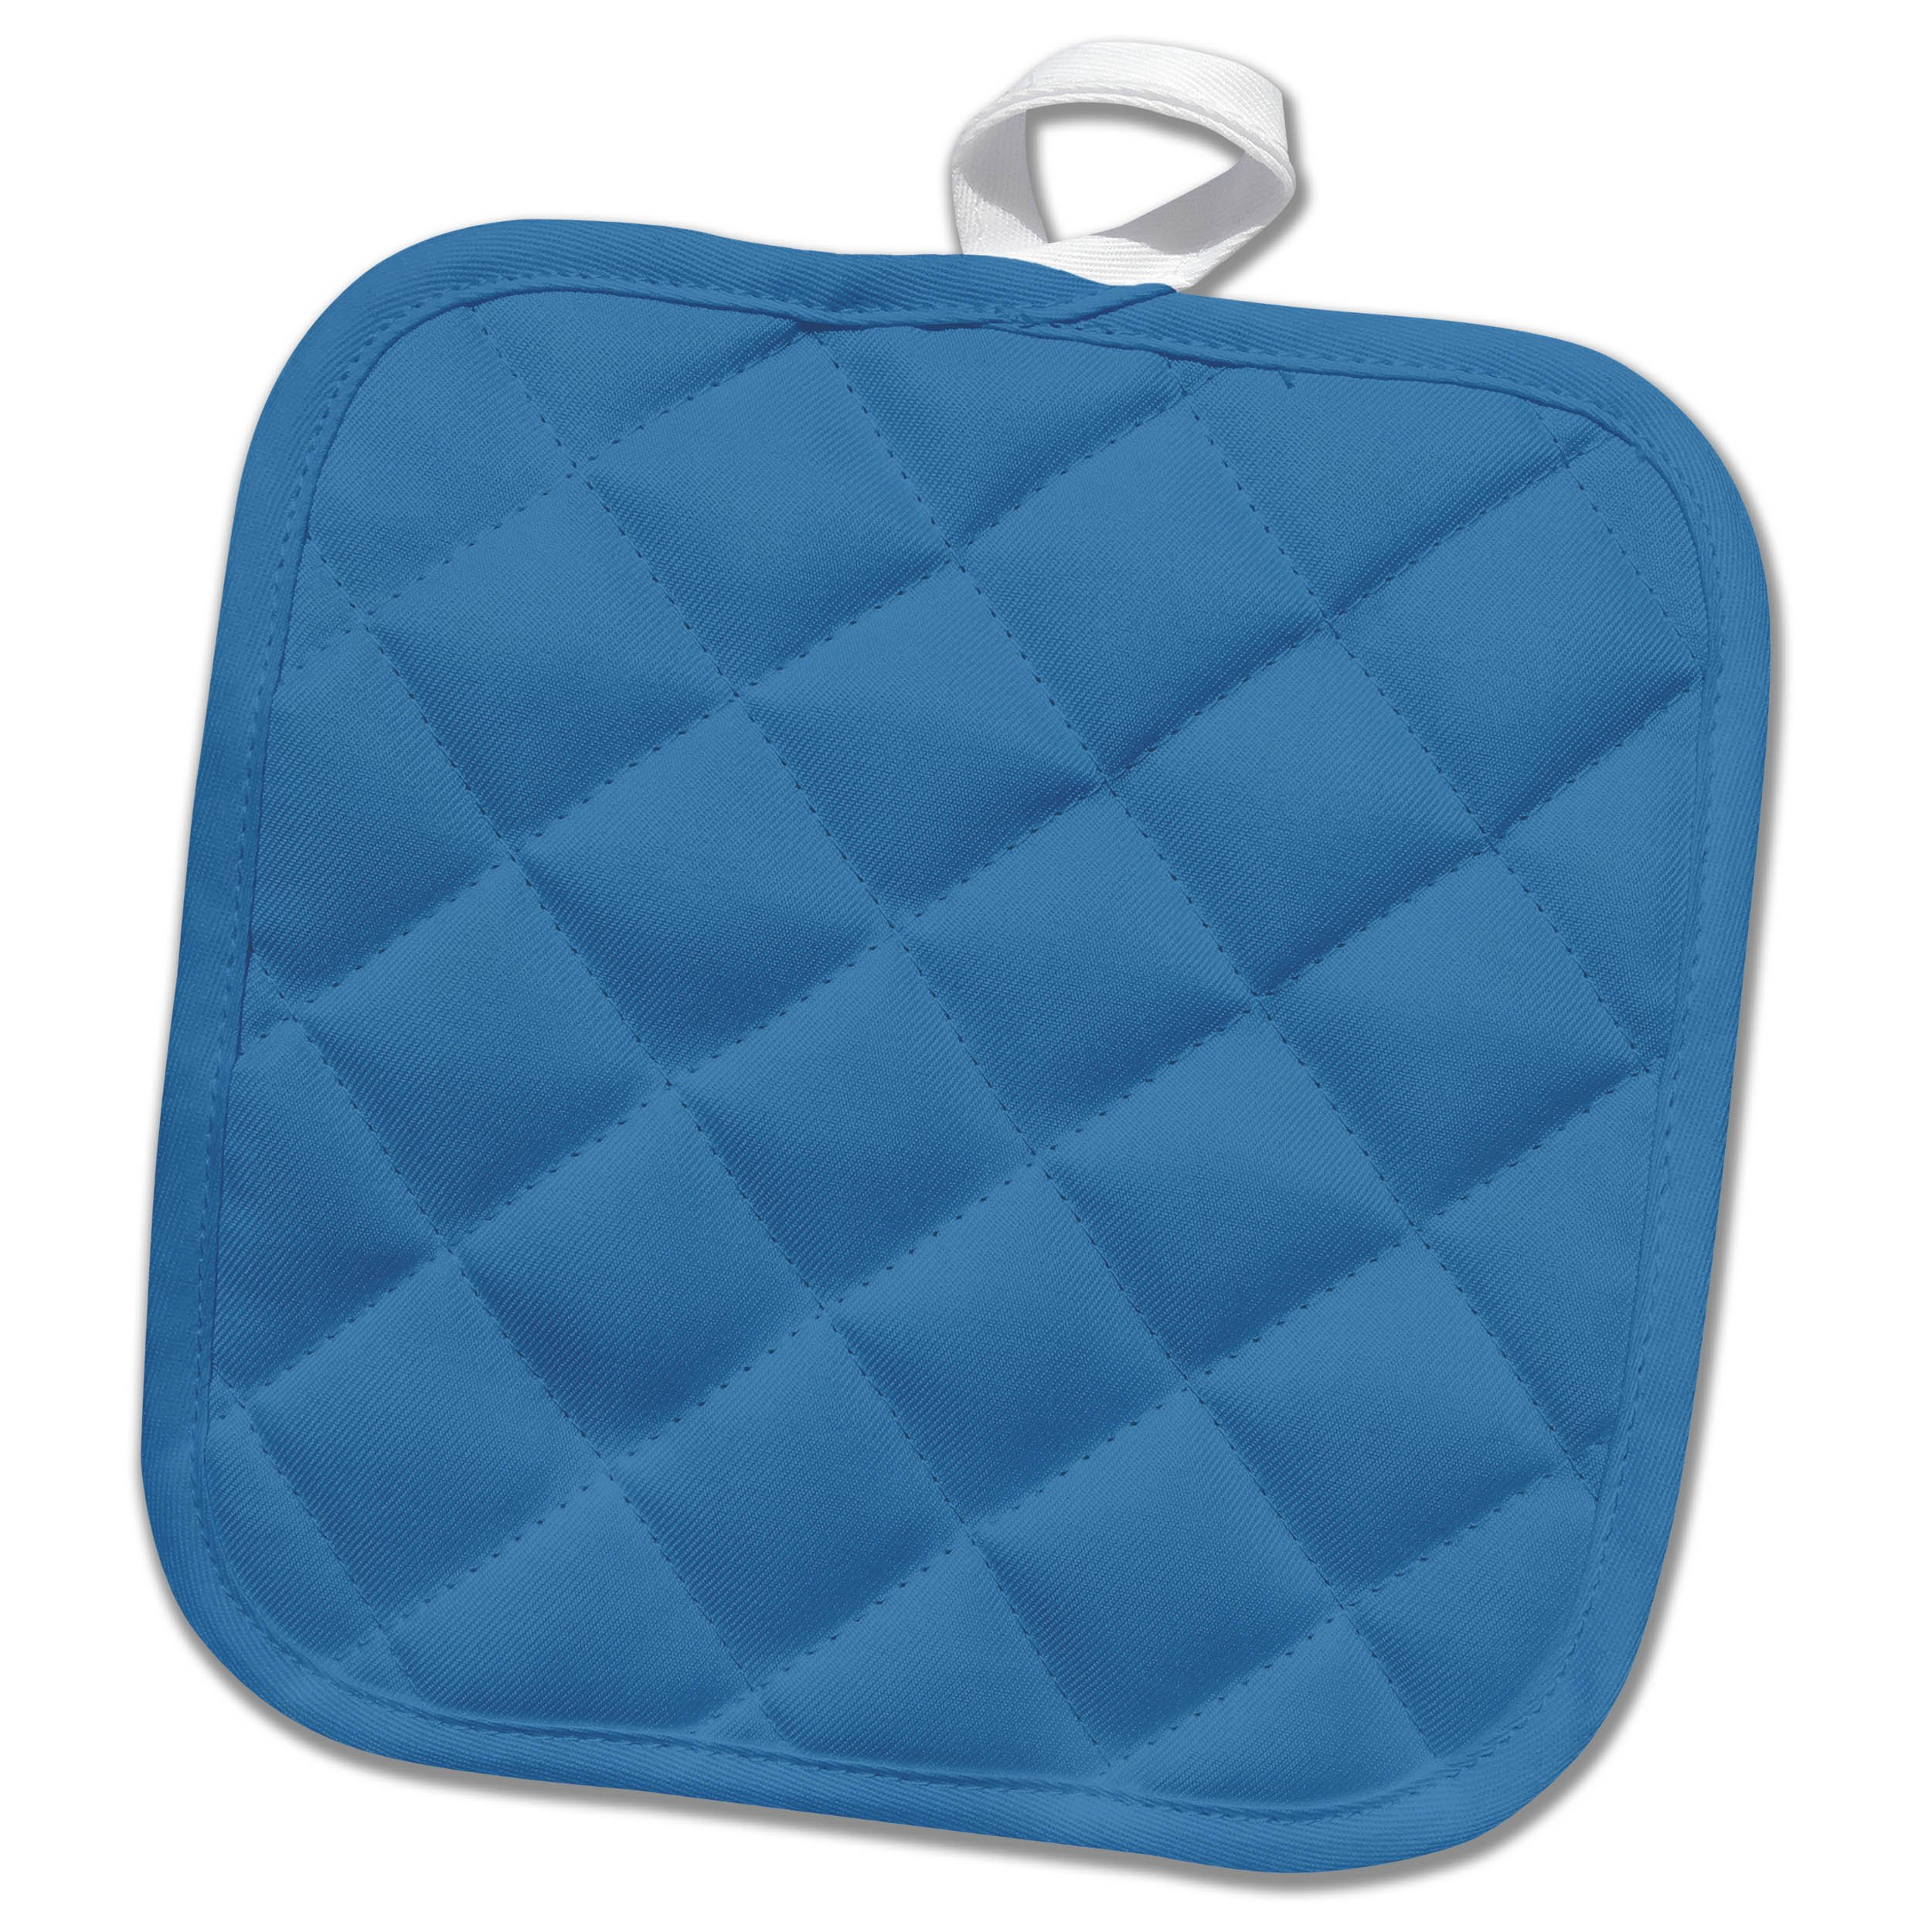 3dRose Kultjers Colors - Color steel blue - 8x8 Potholder (phl_284776_1)